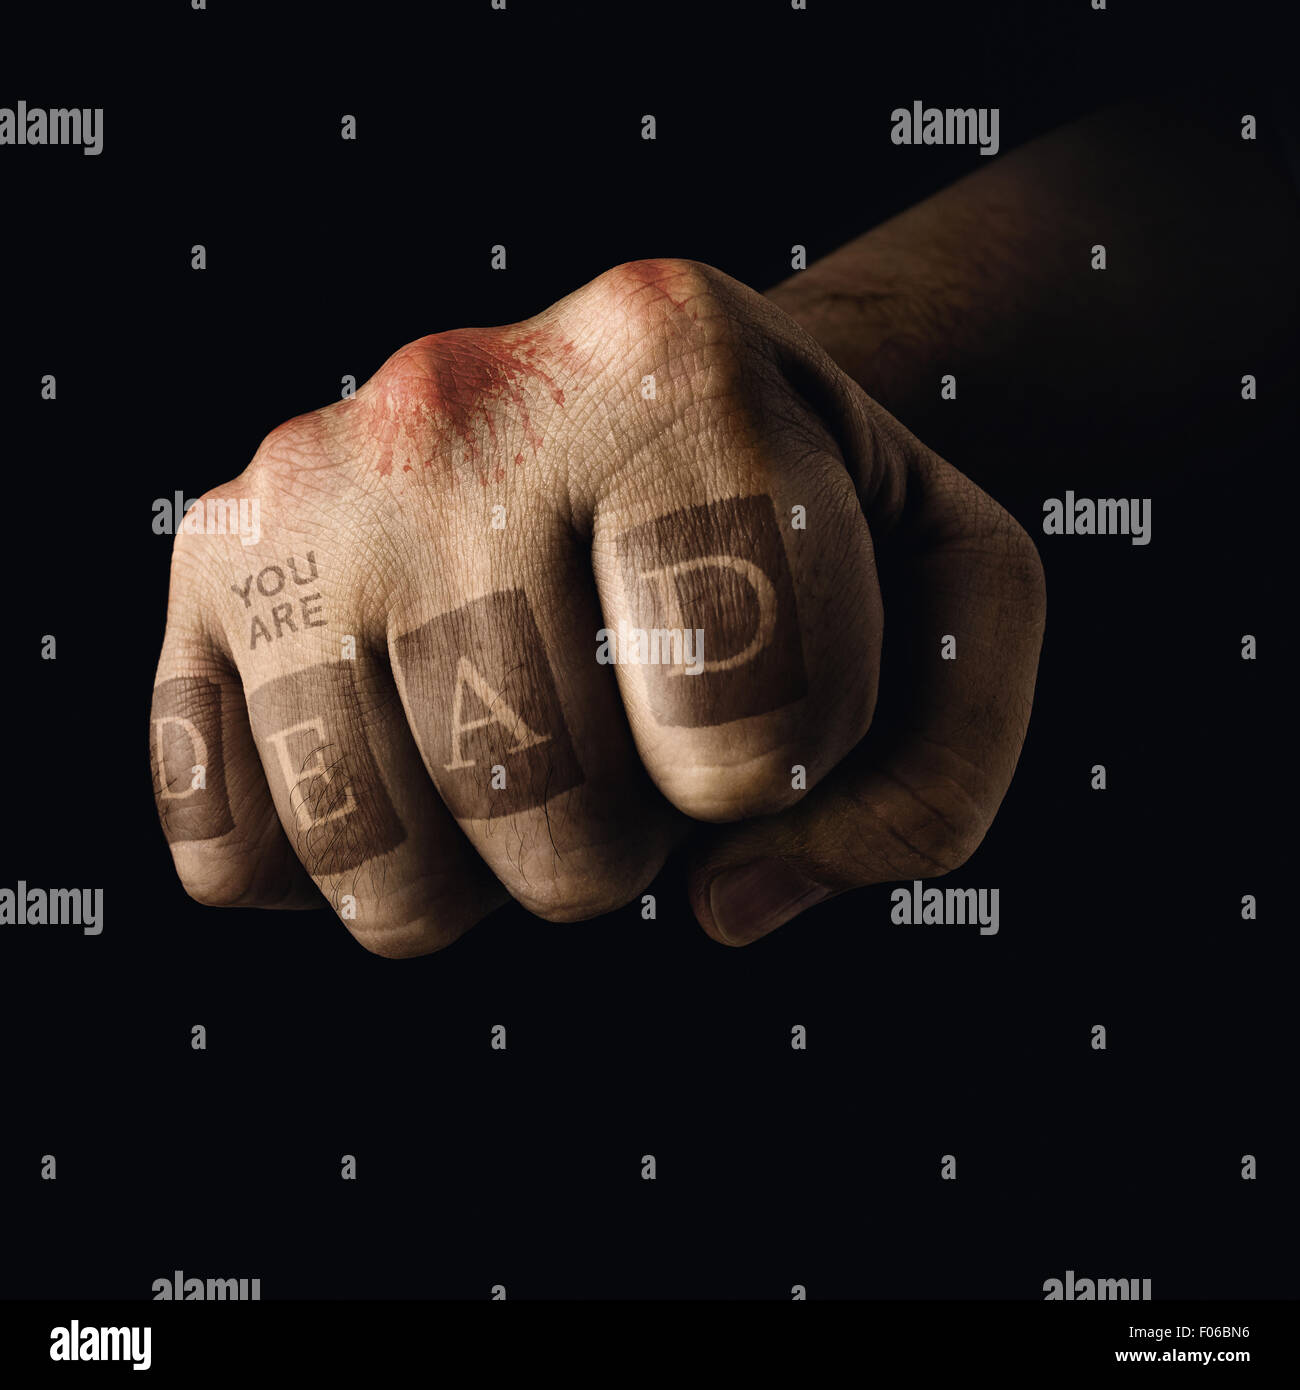 Closed fist with death tattoo on the fingers. Concept of violent sports. - Stock Image